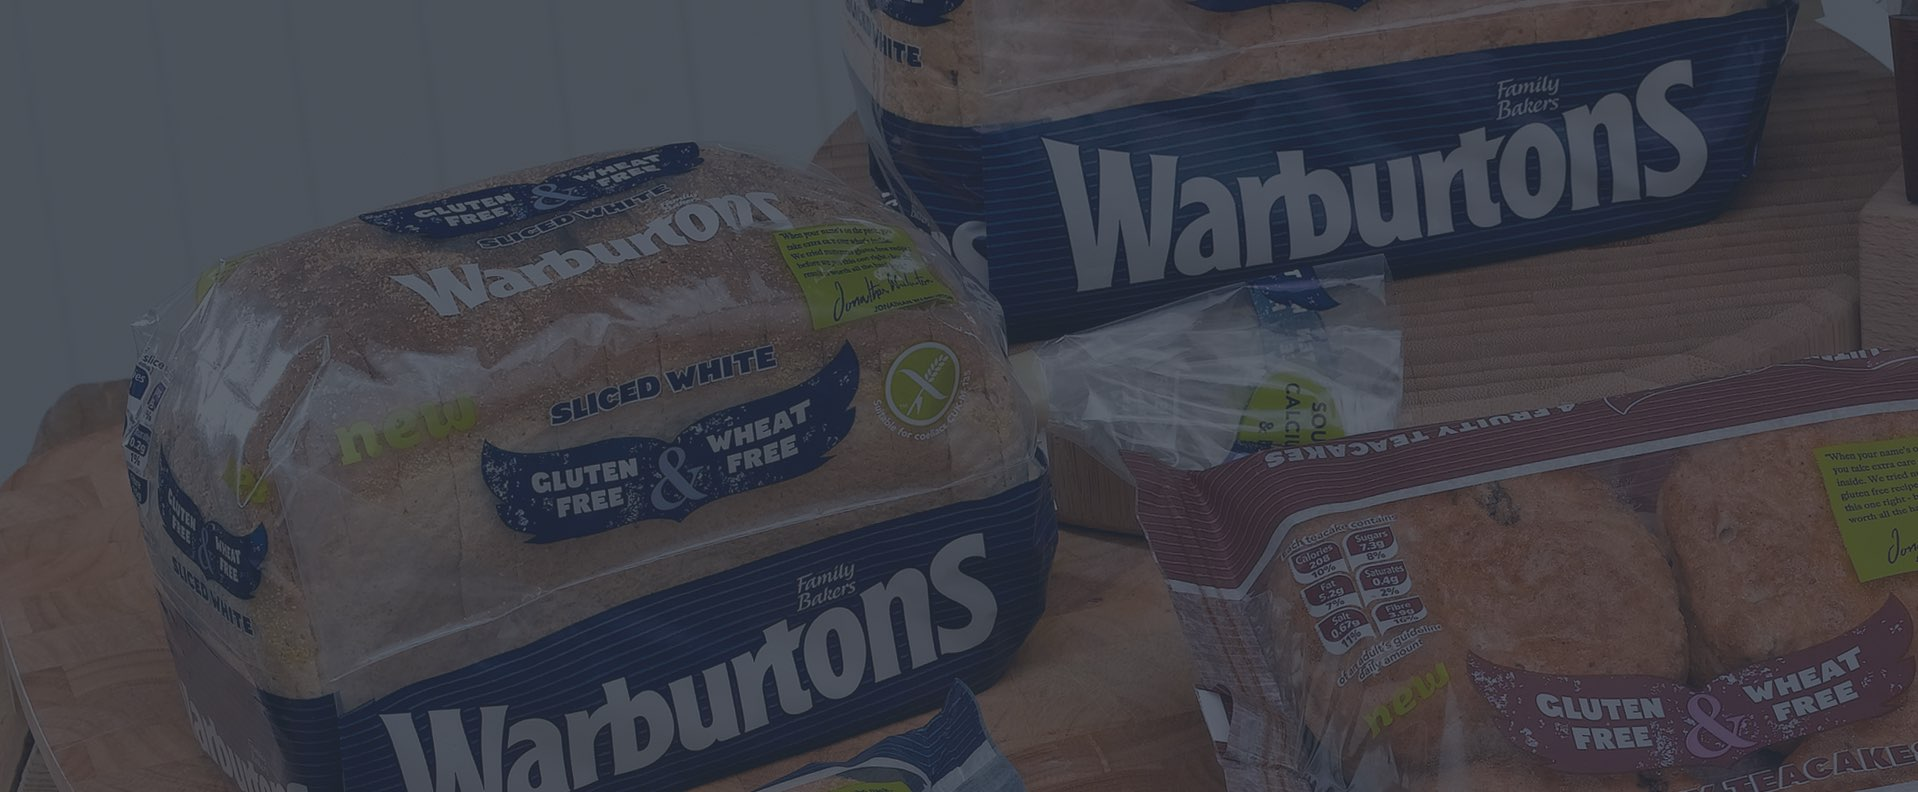 WARBURTONS SAP HCM REPORTS: QUERY MANAGER IS THE BEST THING SINCE SLICED BREAD